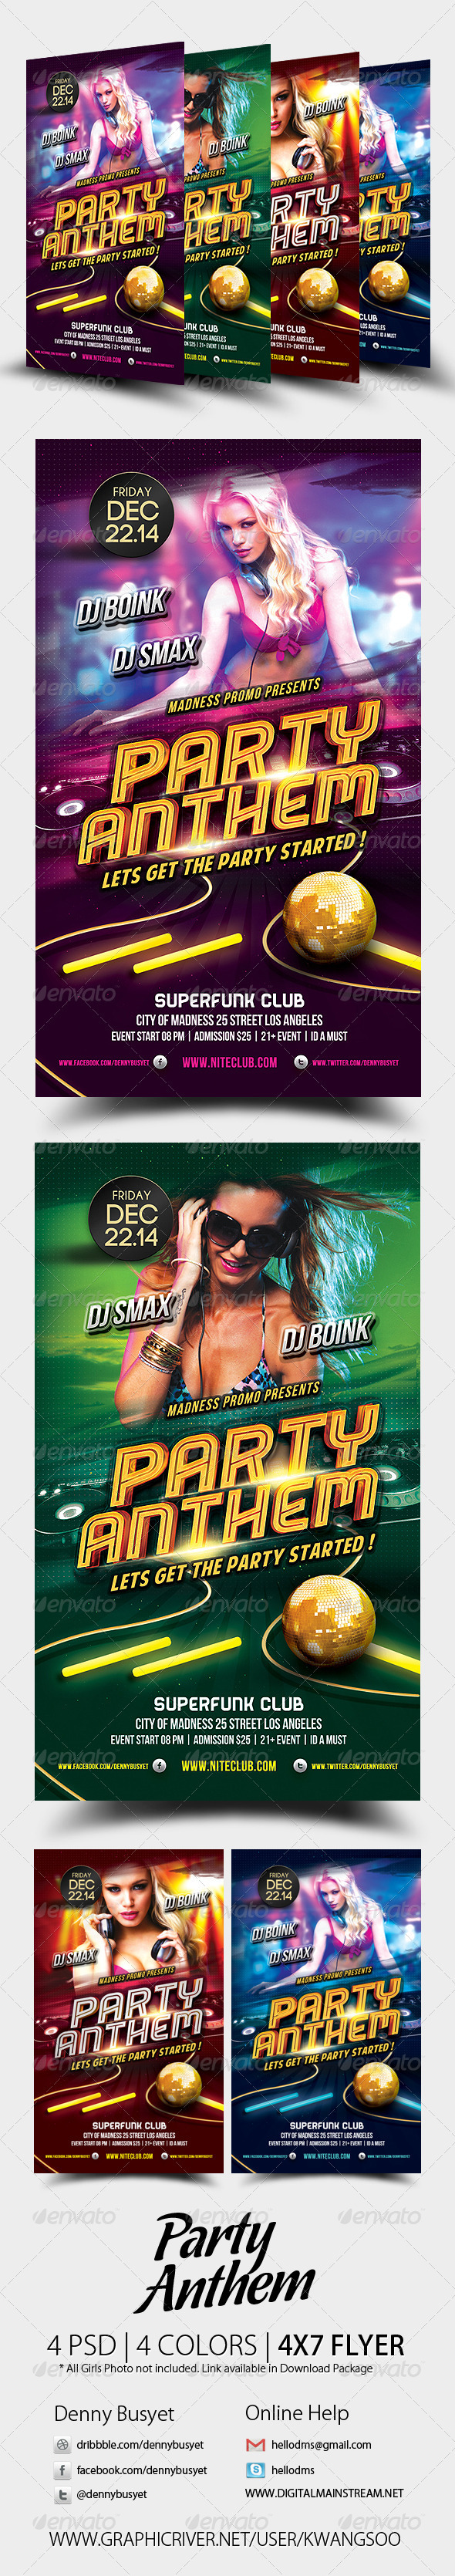 Party Anthem Nightclub Psd Flyer Template - Events Flyers